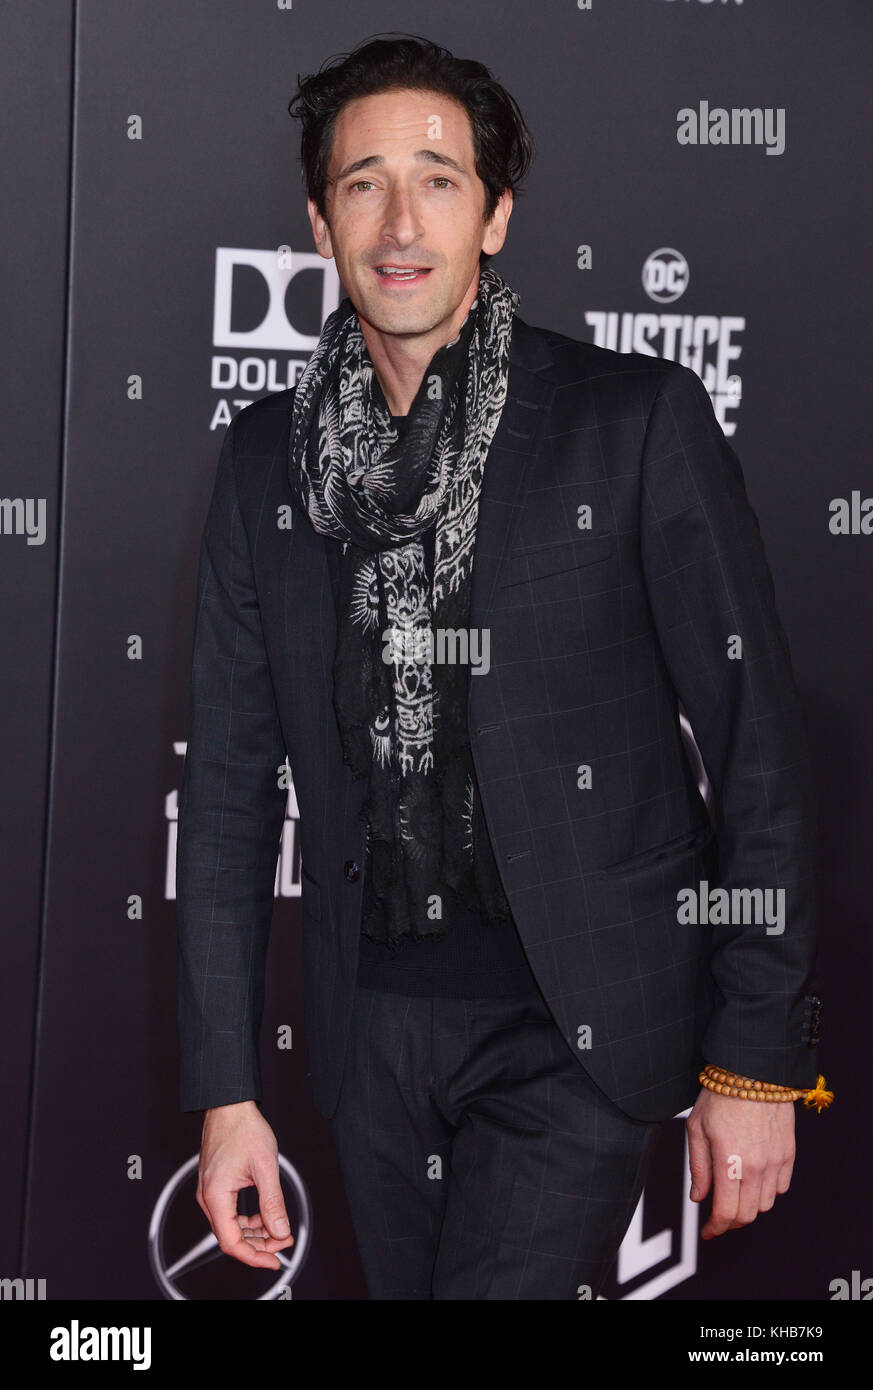 Adrien Brody 144 attend the premiere of Warner Bros. Pictures' 'Justice League' at Dolby Theatre on - Stock Image